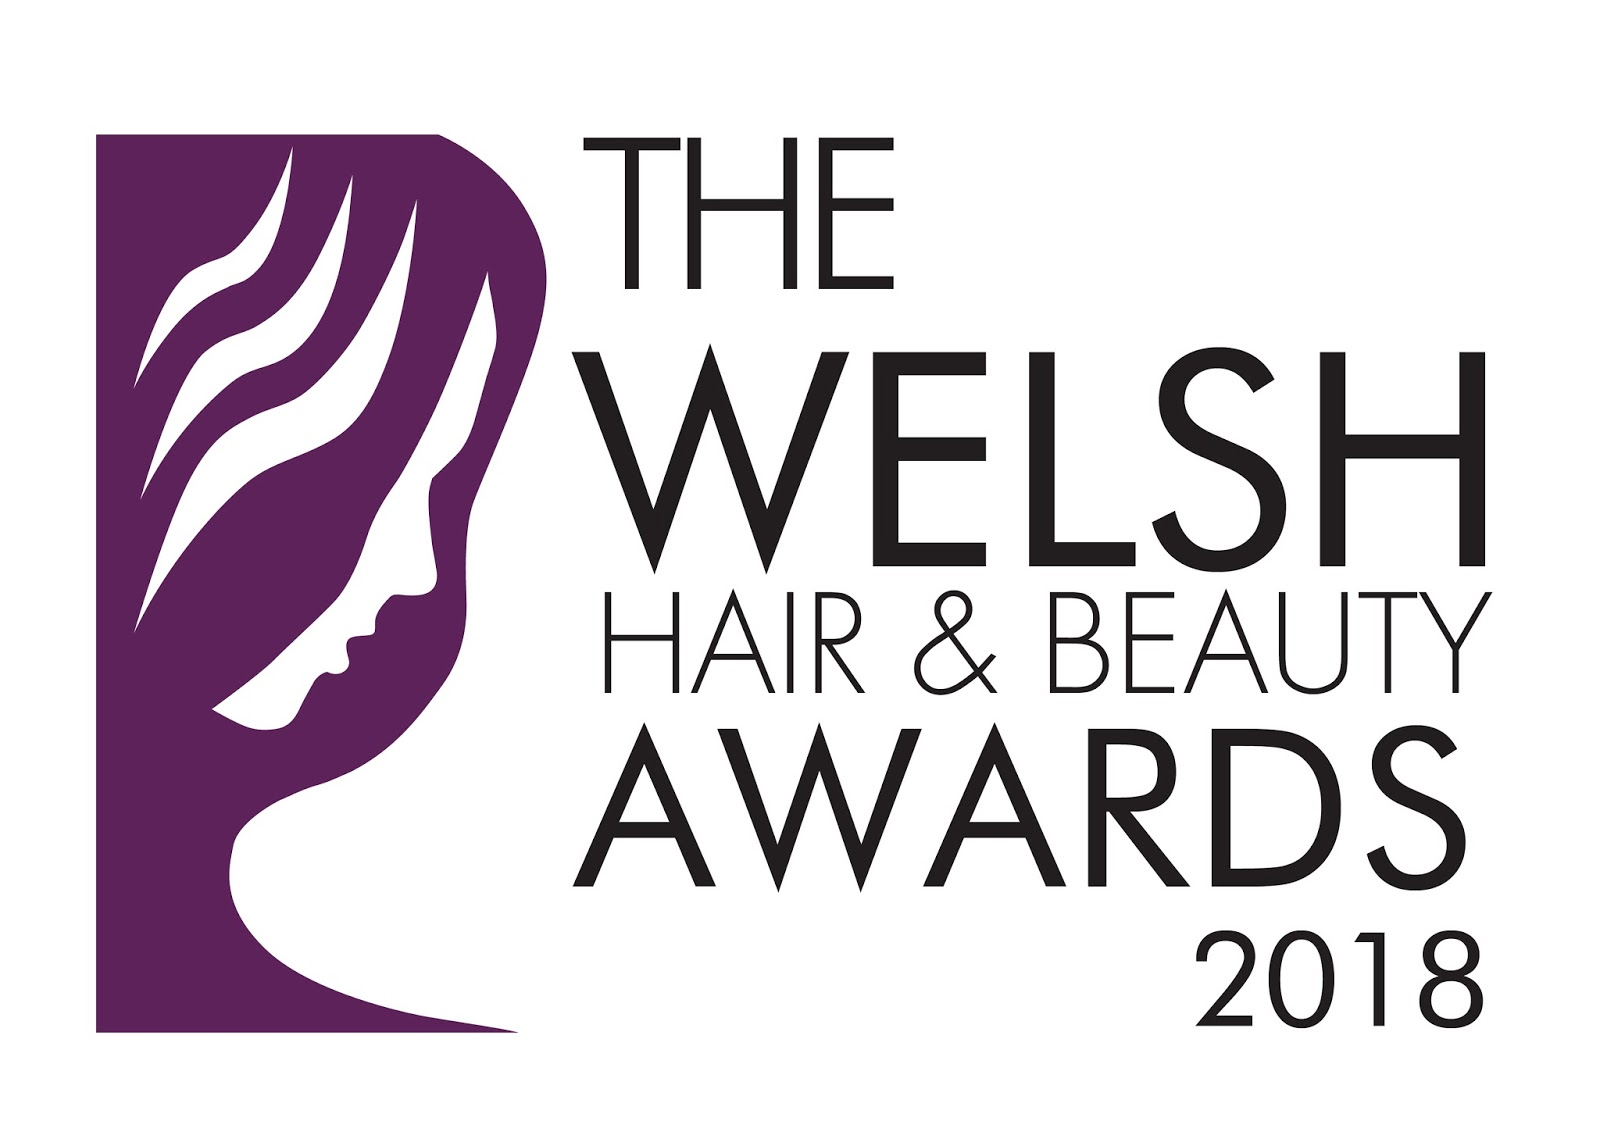 The winners of the fifth Welsh Hair & Beauty Awards are